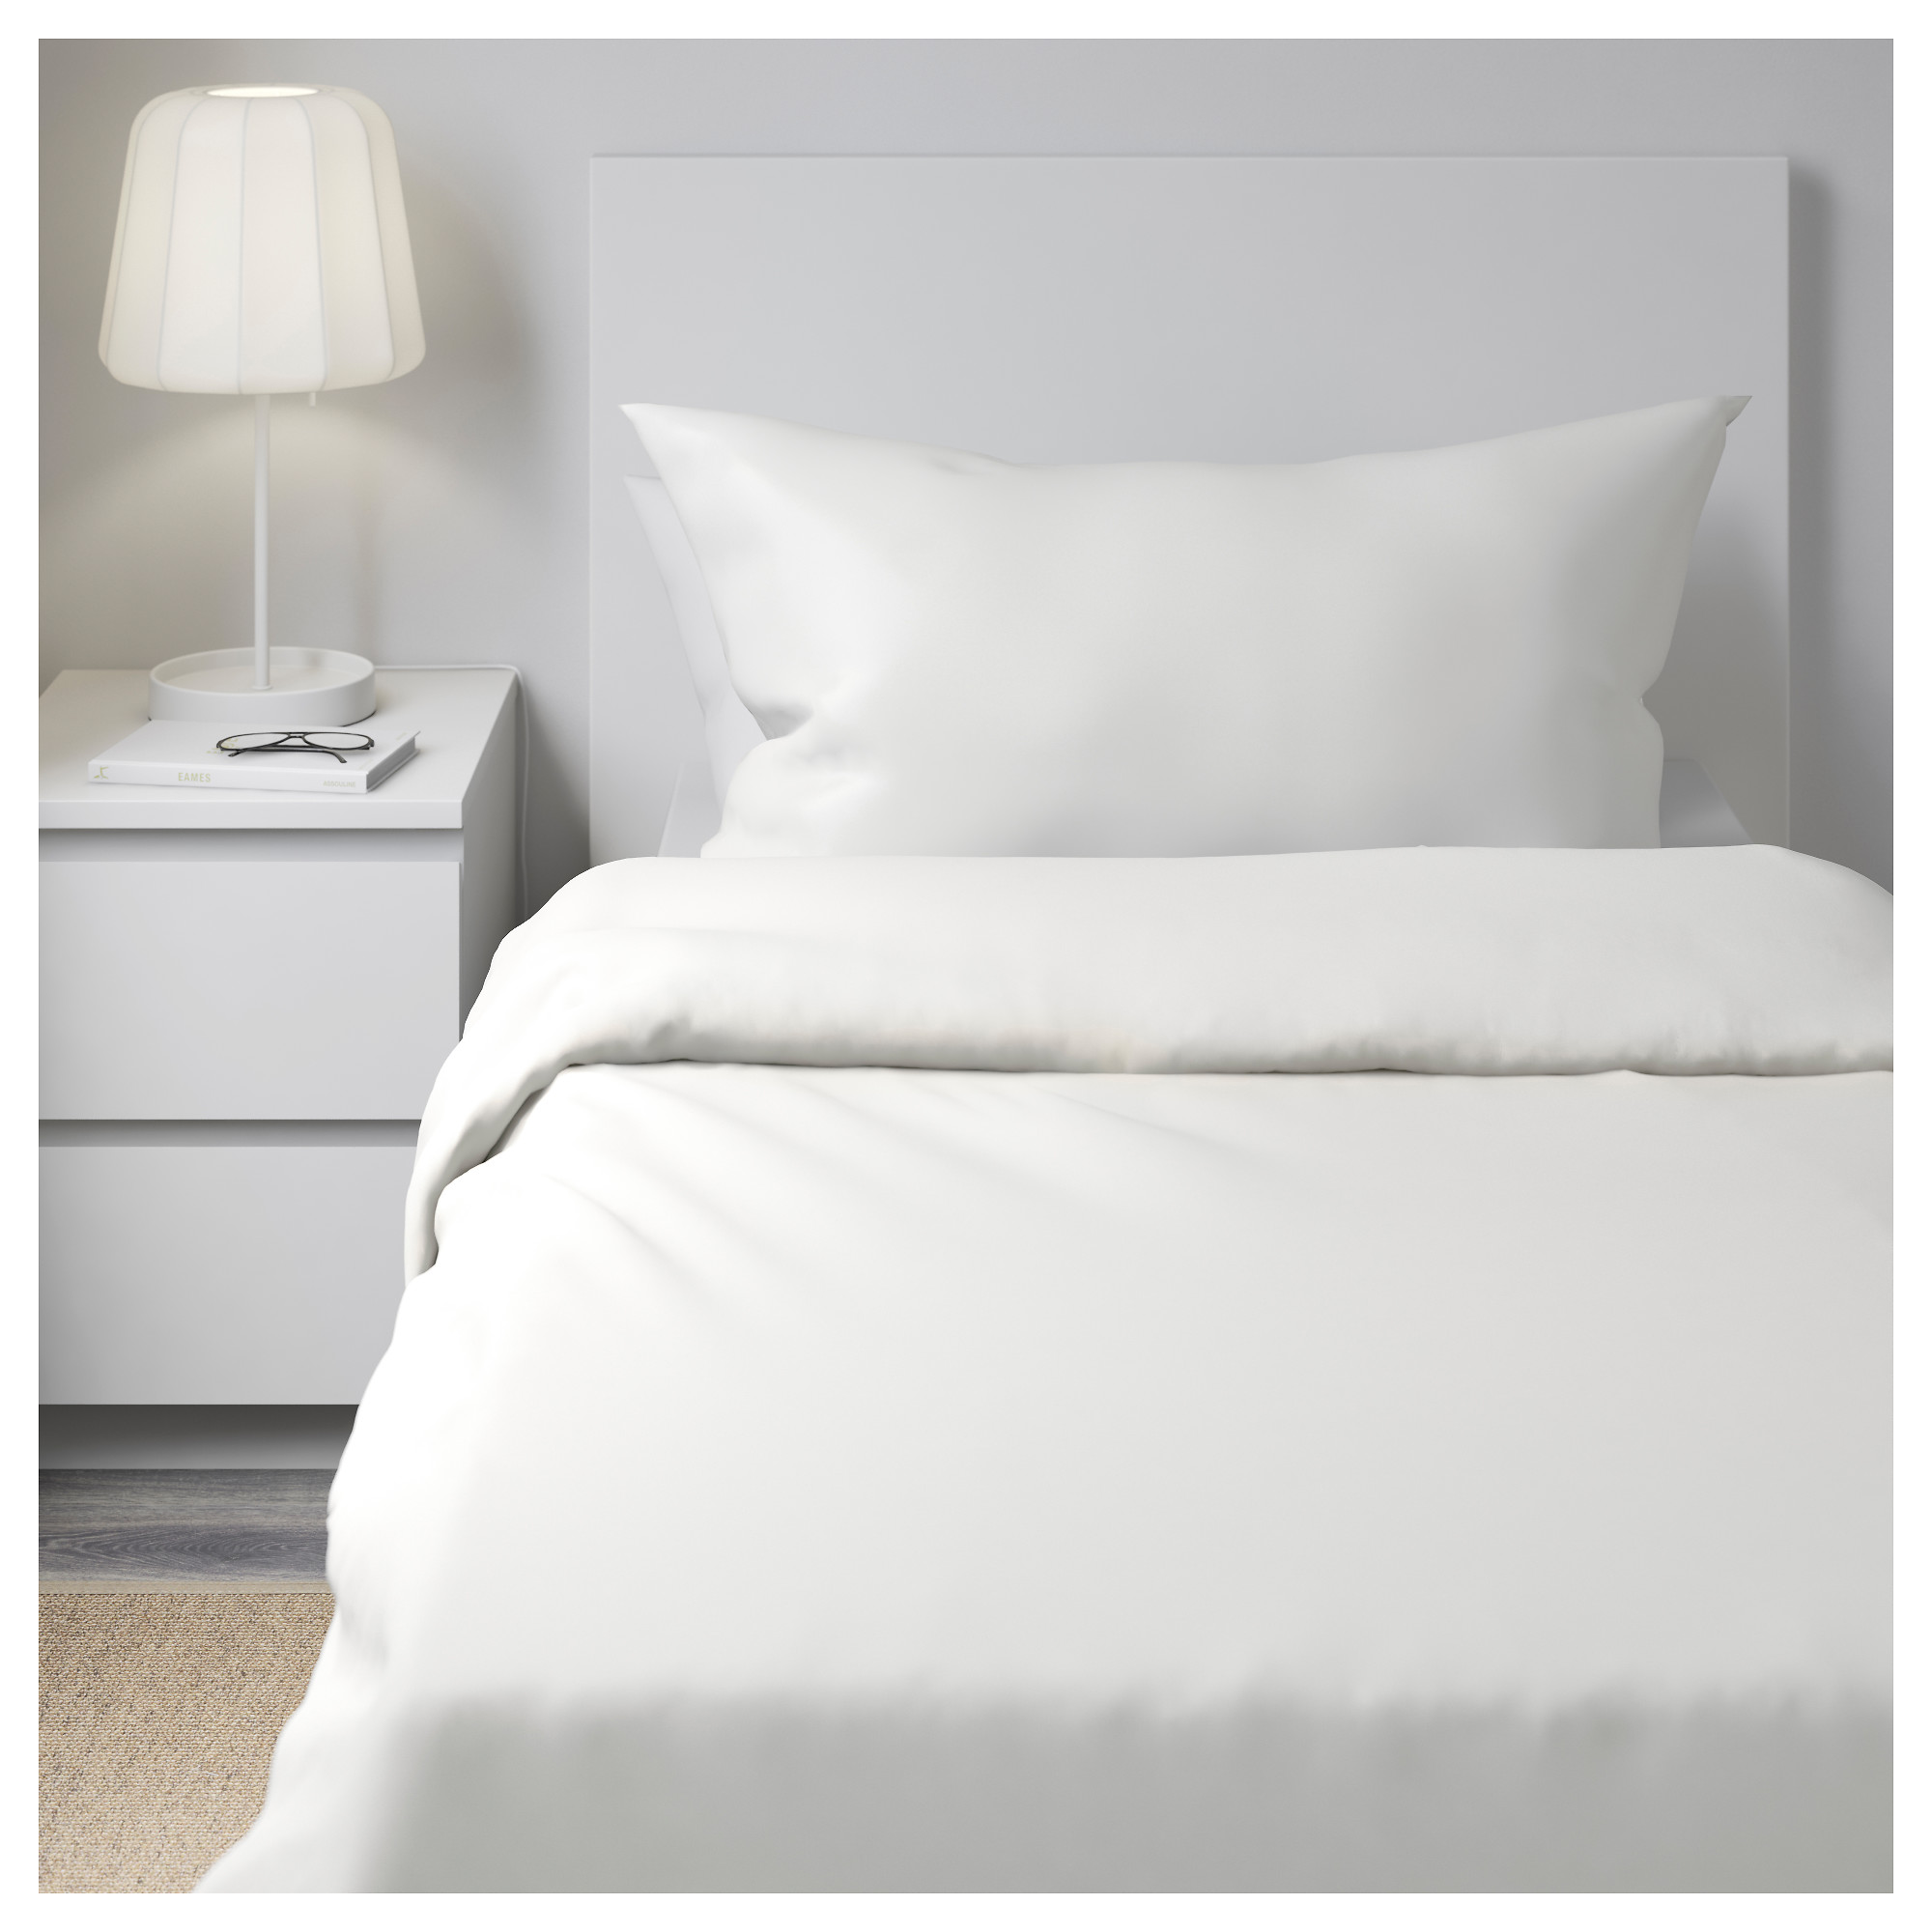 Bed Bath & Beyond Duvet Covers | White Duvet Cover | Queen Duvet Cover